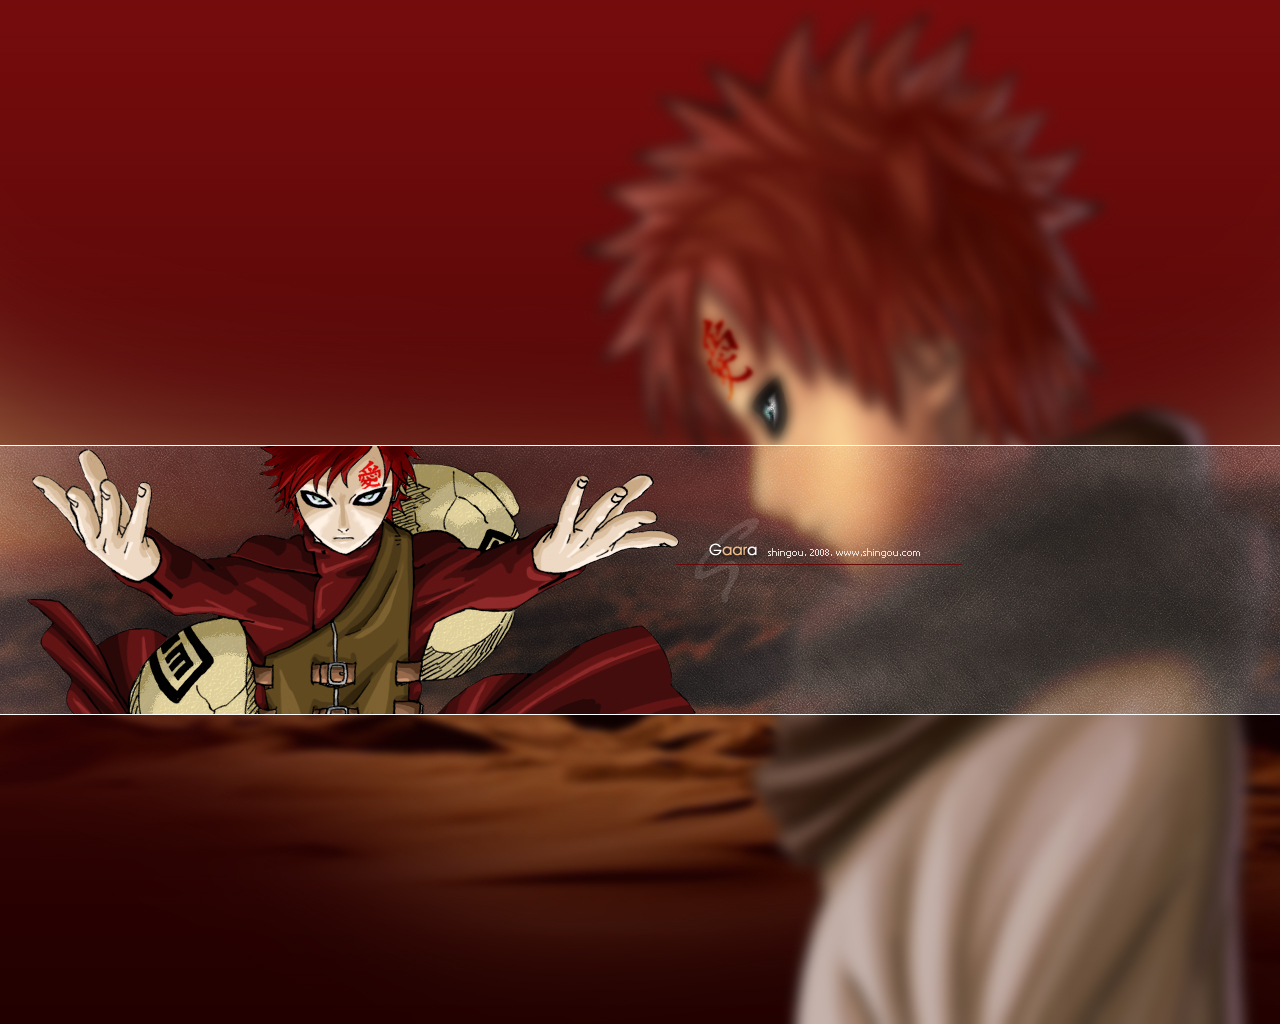 Gaara Kazekage Wallpapers Amazing Wallpapers 1280x1024